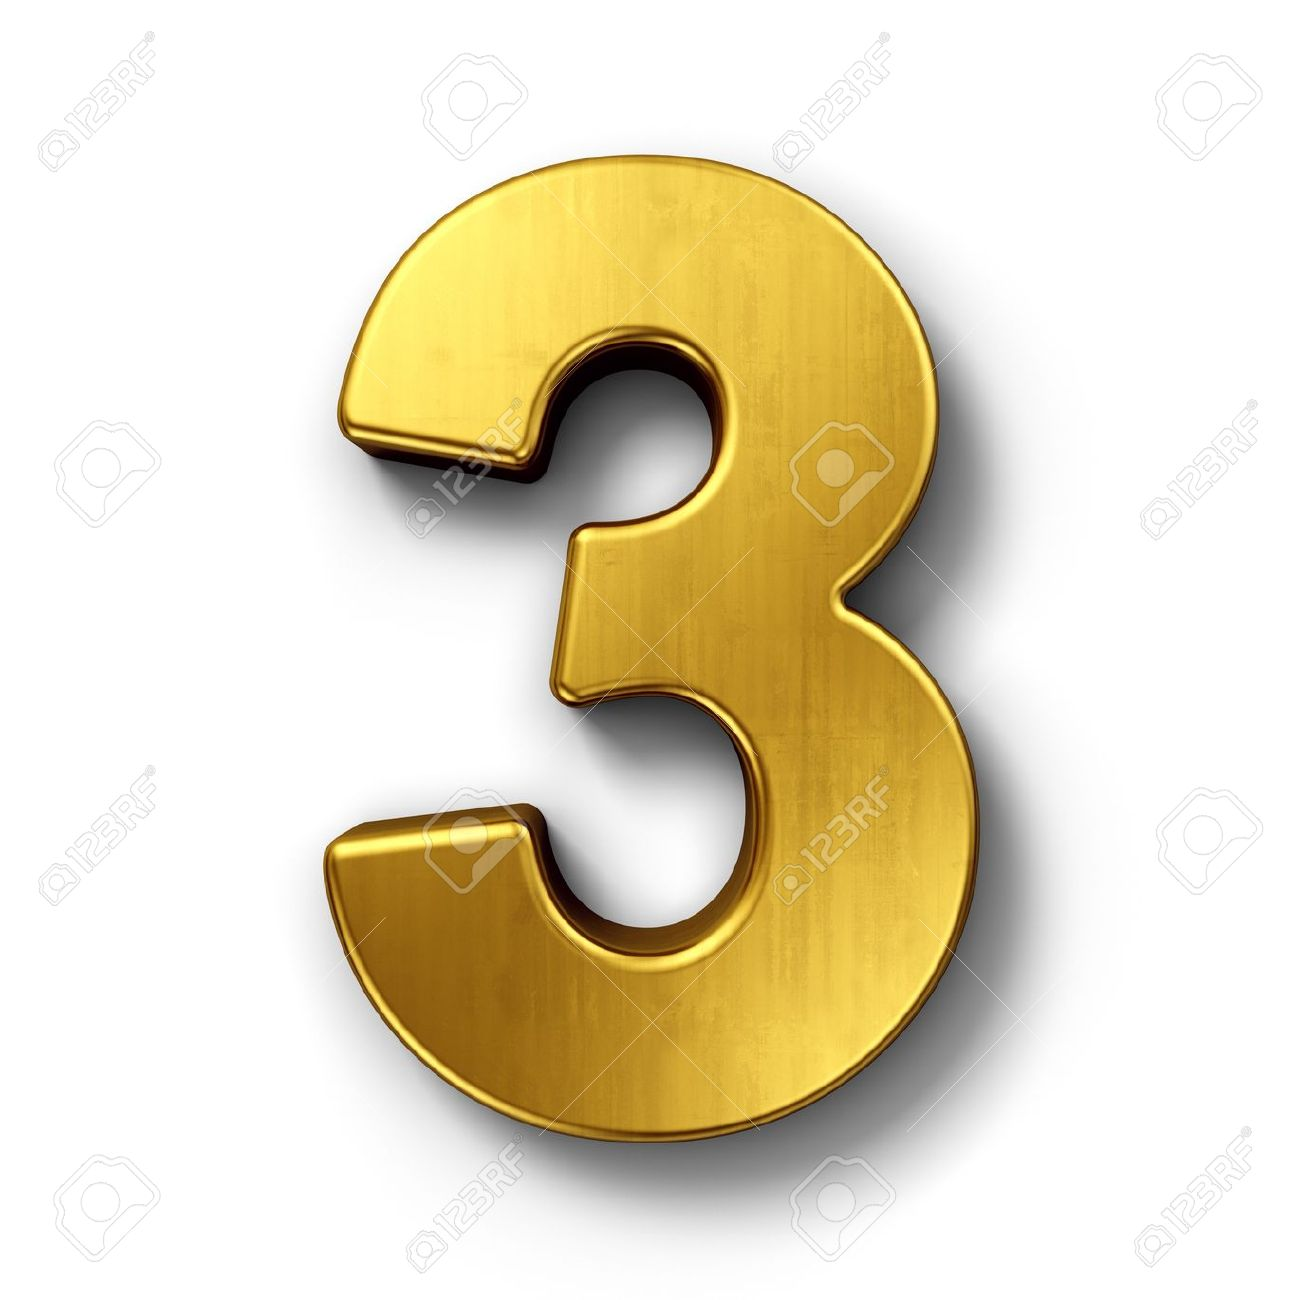 3d Rendering Of The Number 3 In Gold Metal On A White Isolated.. Stock Photo, Picture And Royalty Free Image. Image 7826996.